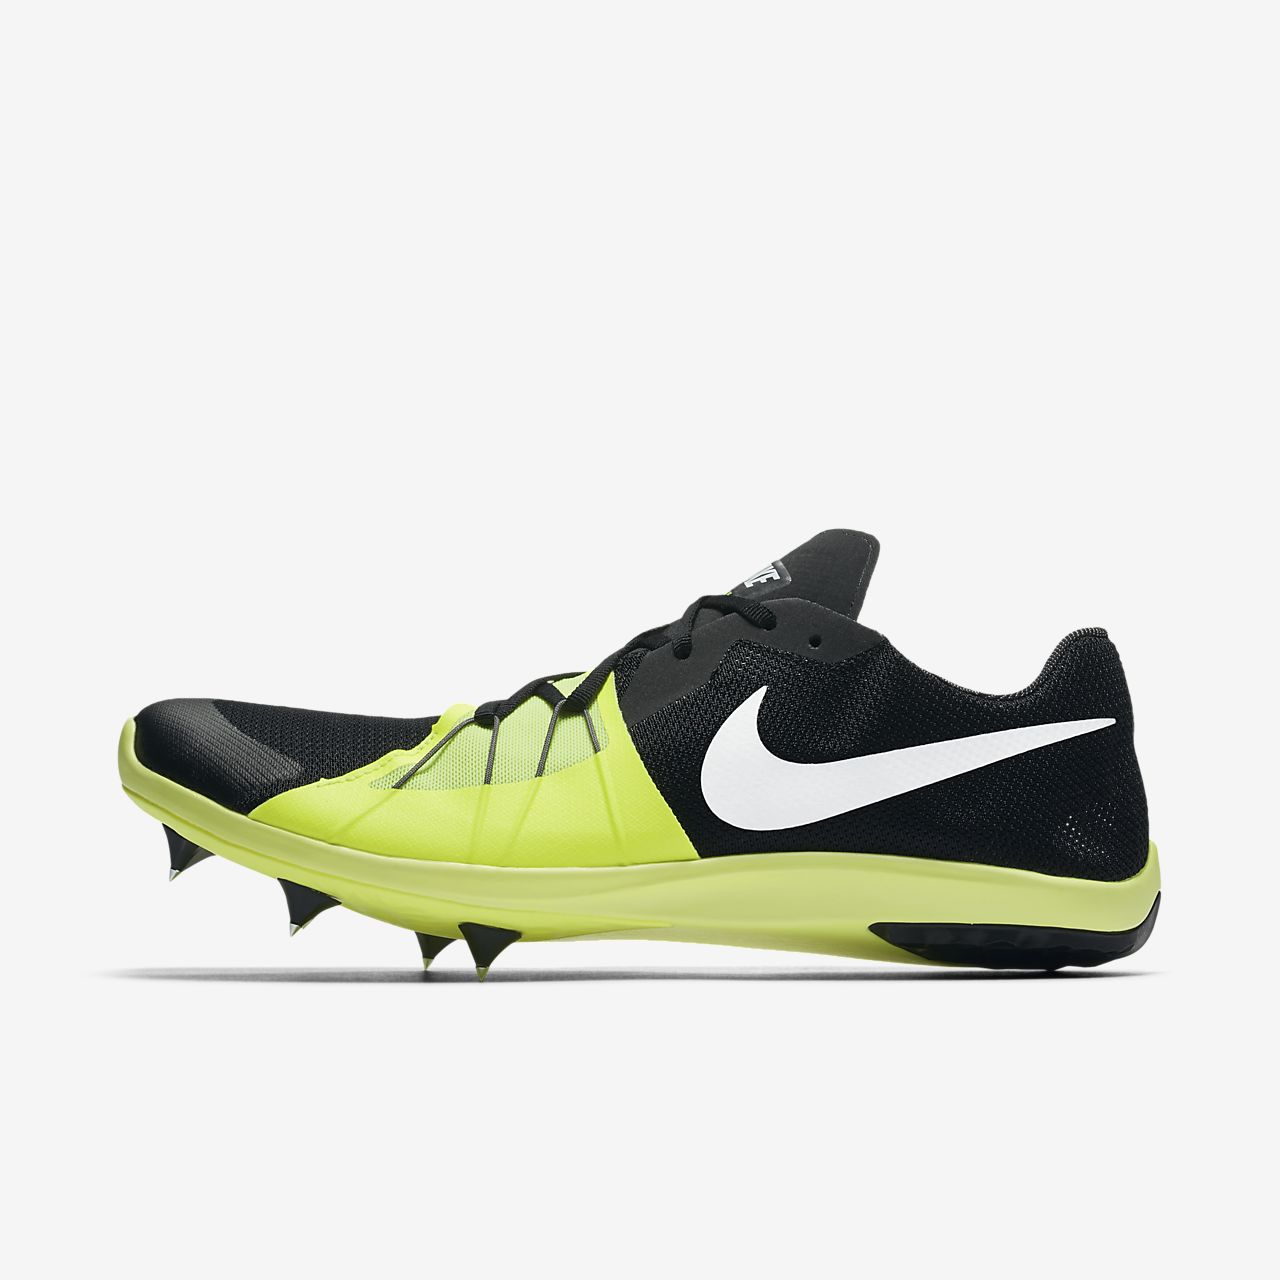 Nike Zoom Rival XC UNISEX Spikeless Track Shoe Says 6 Women